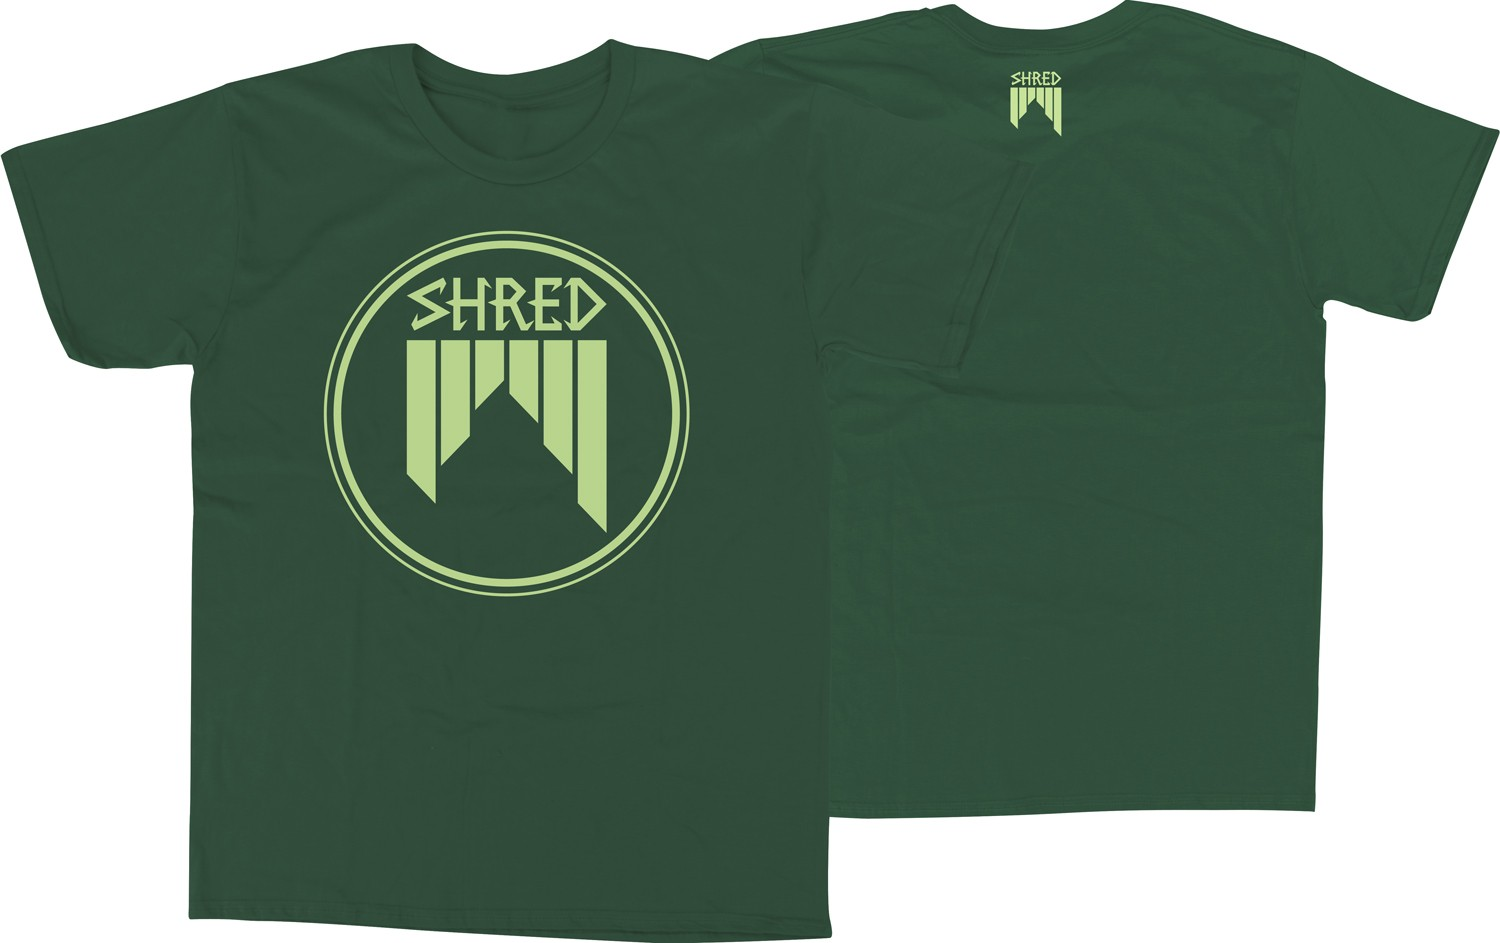 Shred T-shirt Concentric EU (unisex)